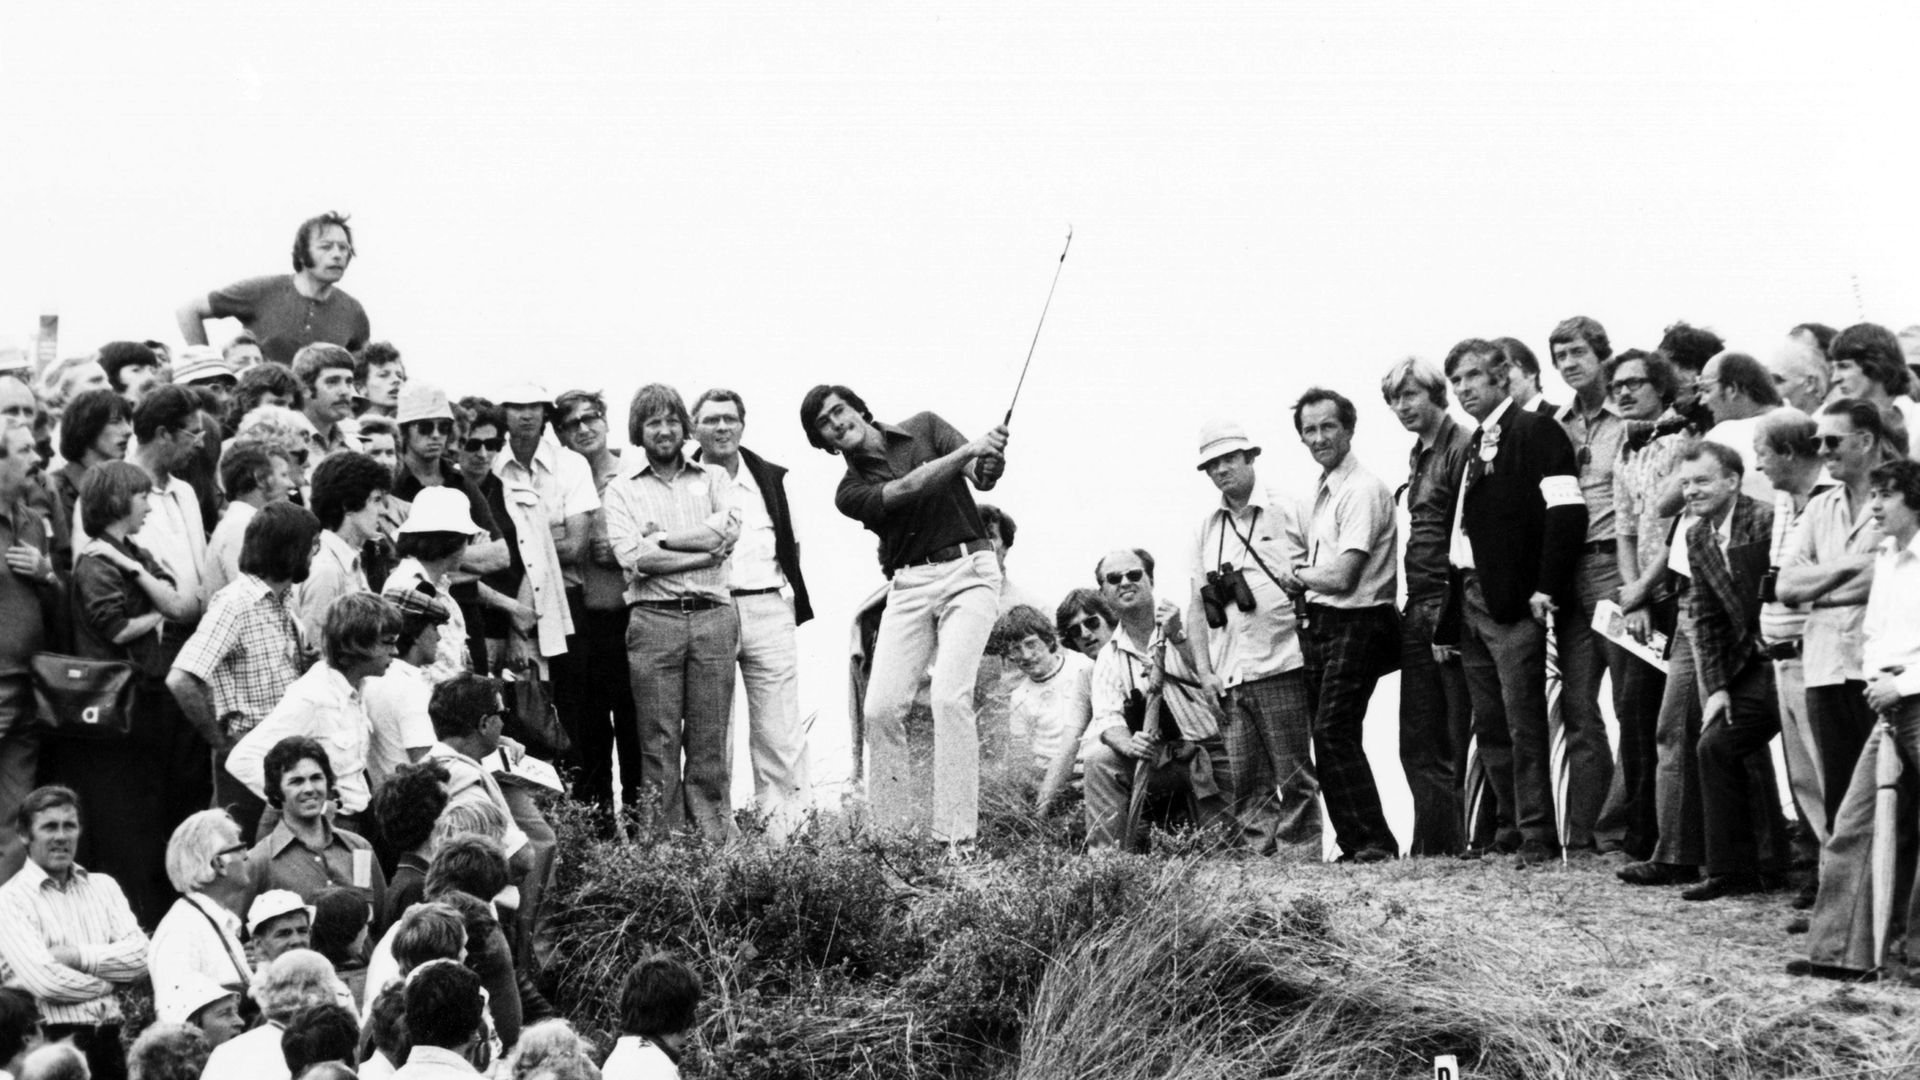 Seve Ballesteros at the 1976 Open Championship at Royal Birkdale Golf Club - Credit: Getty Images